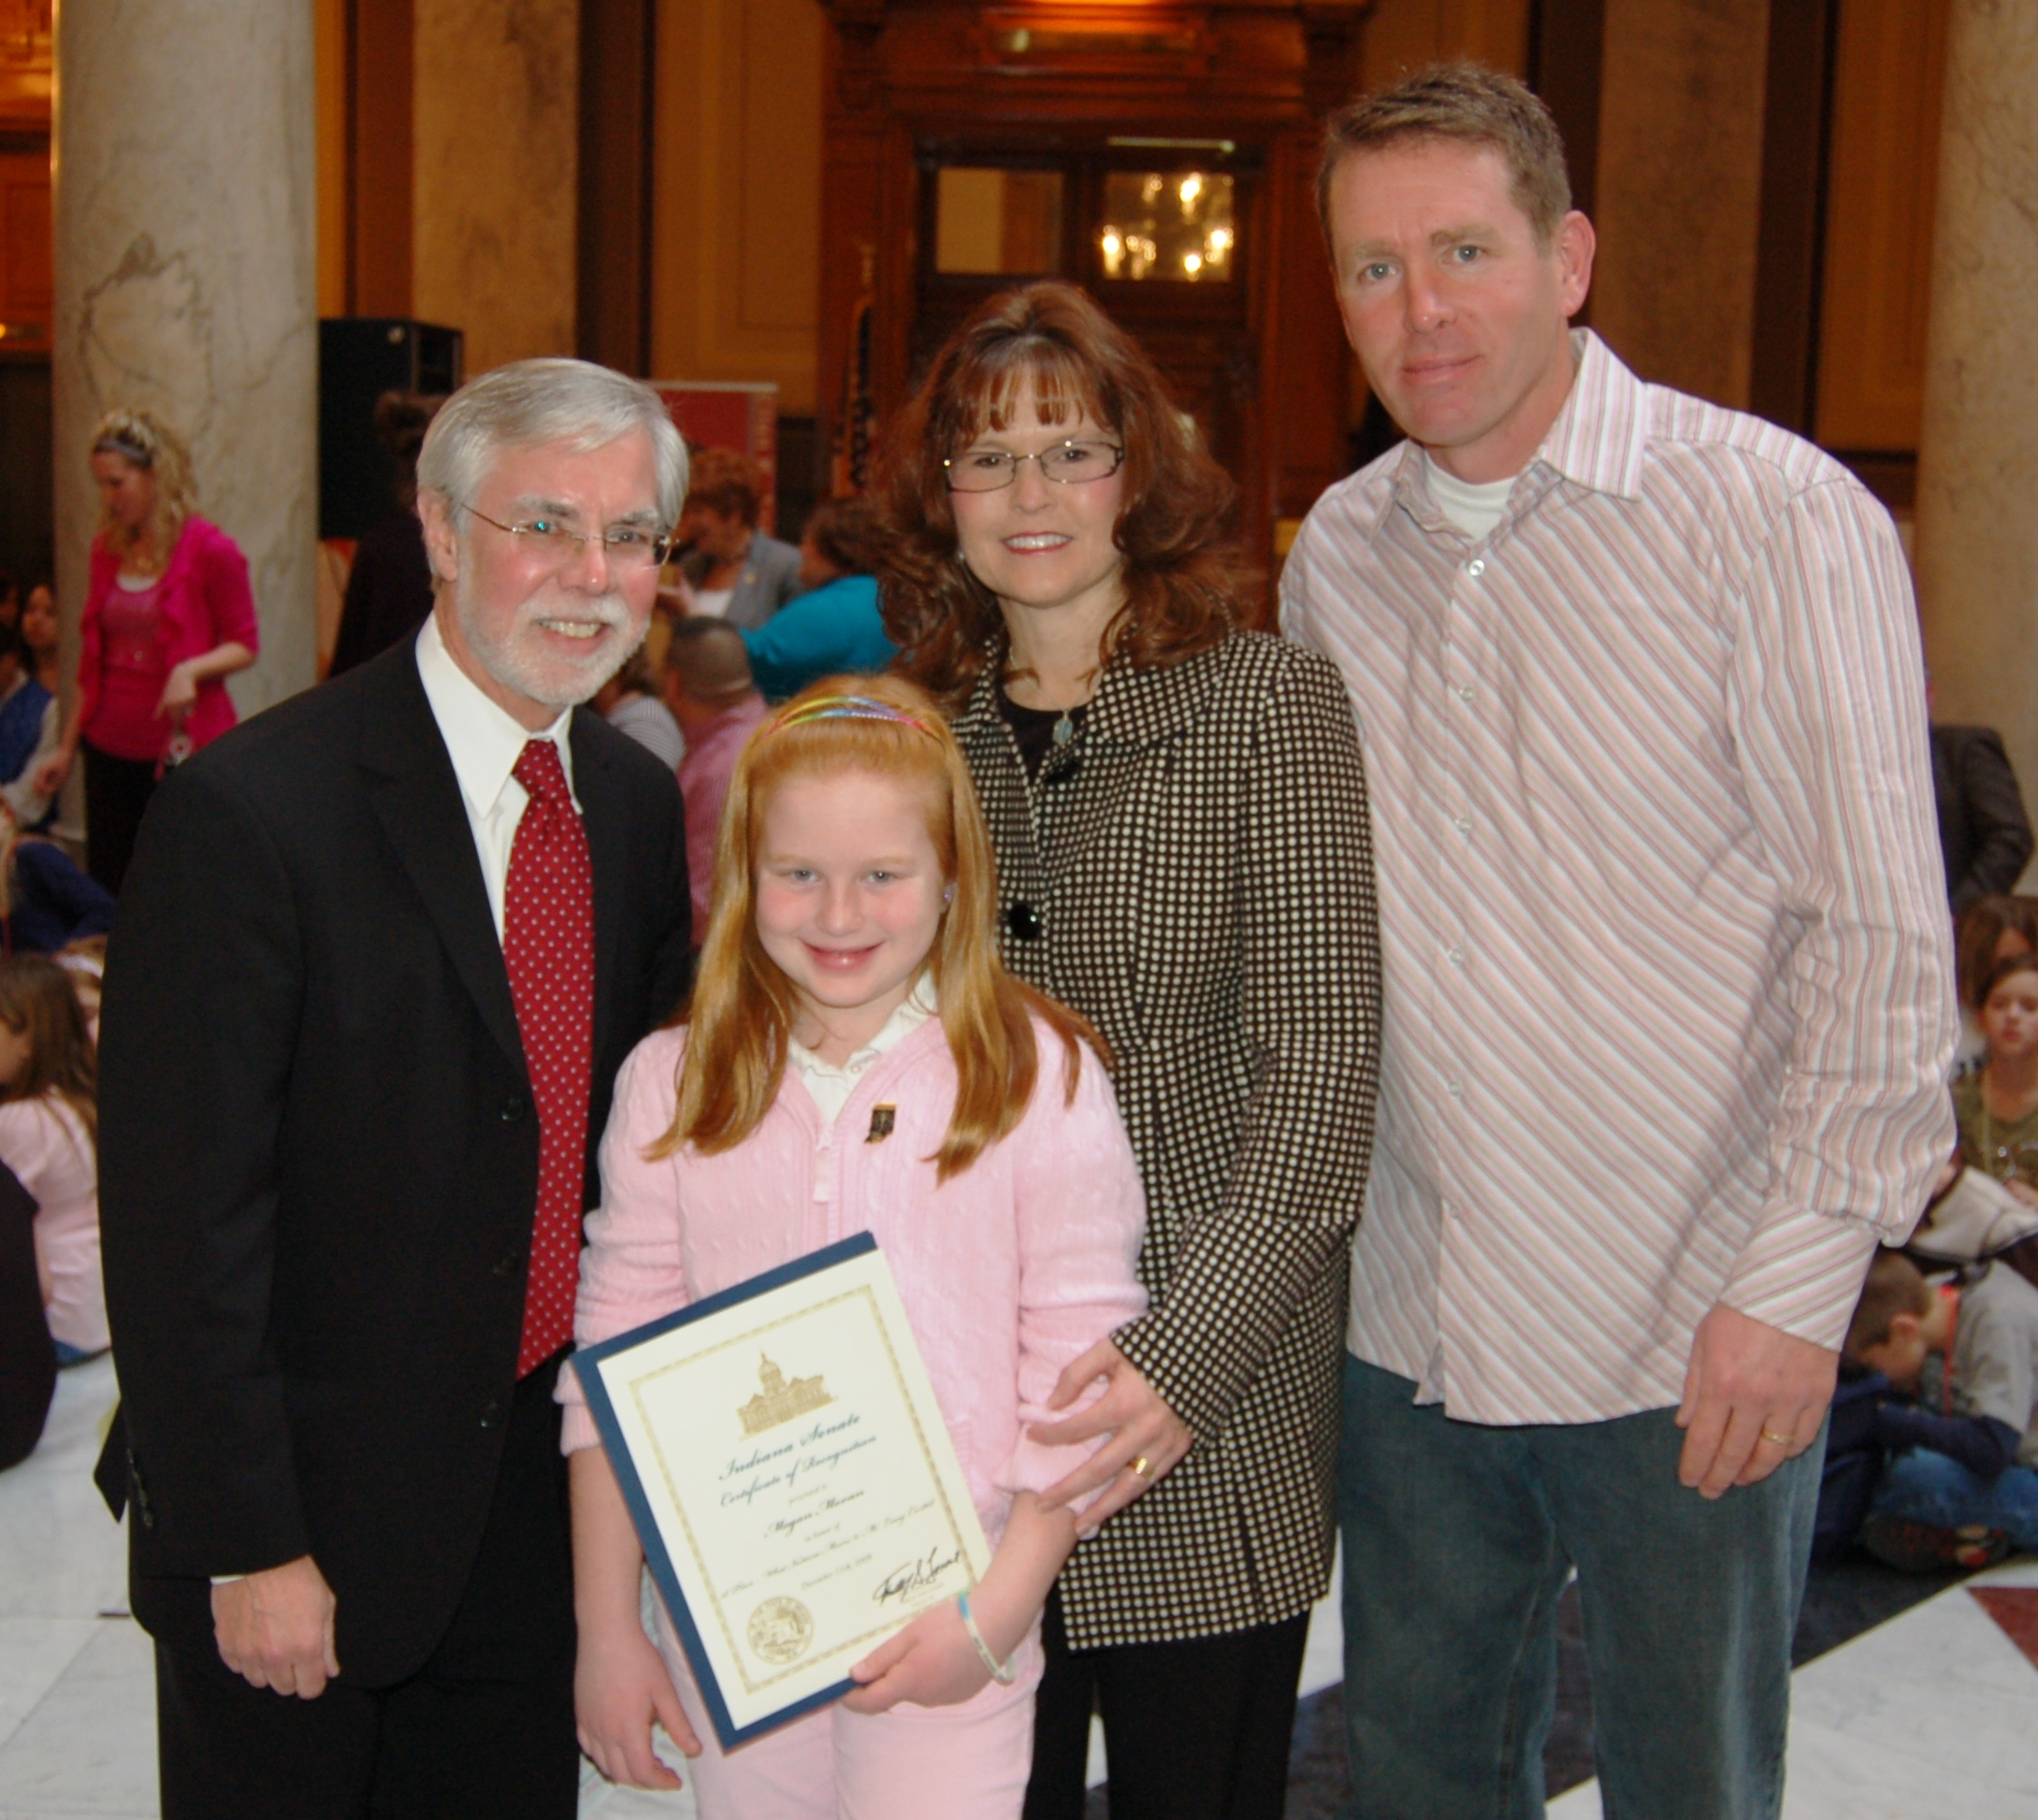 Senator Lanane with Megan Moran and her parents